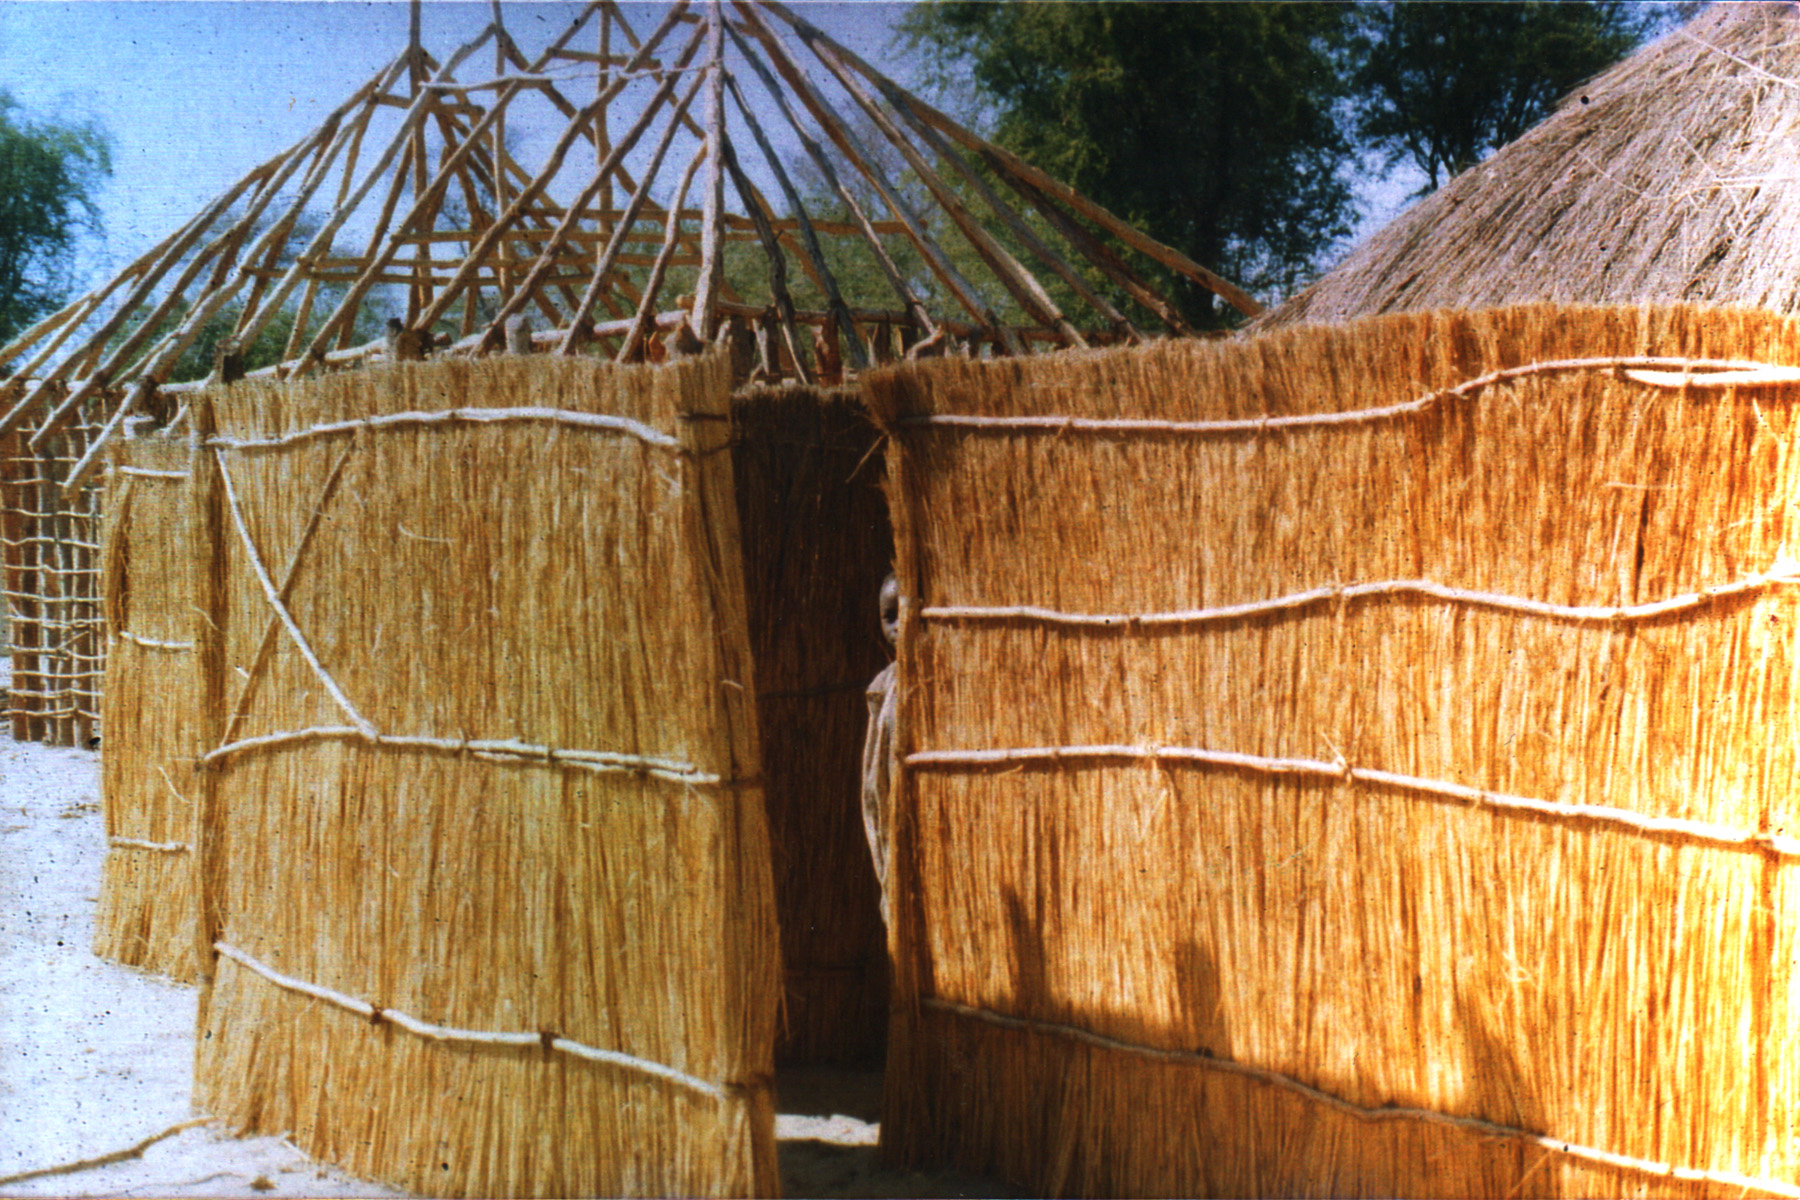 Zambia boy looking from behind reed fence.jpg